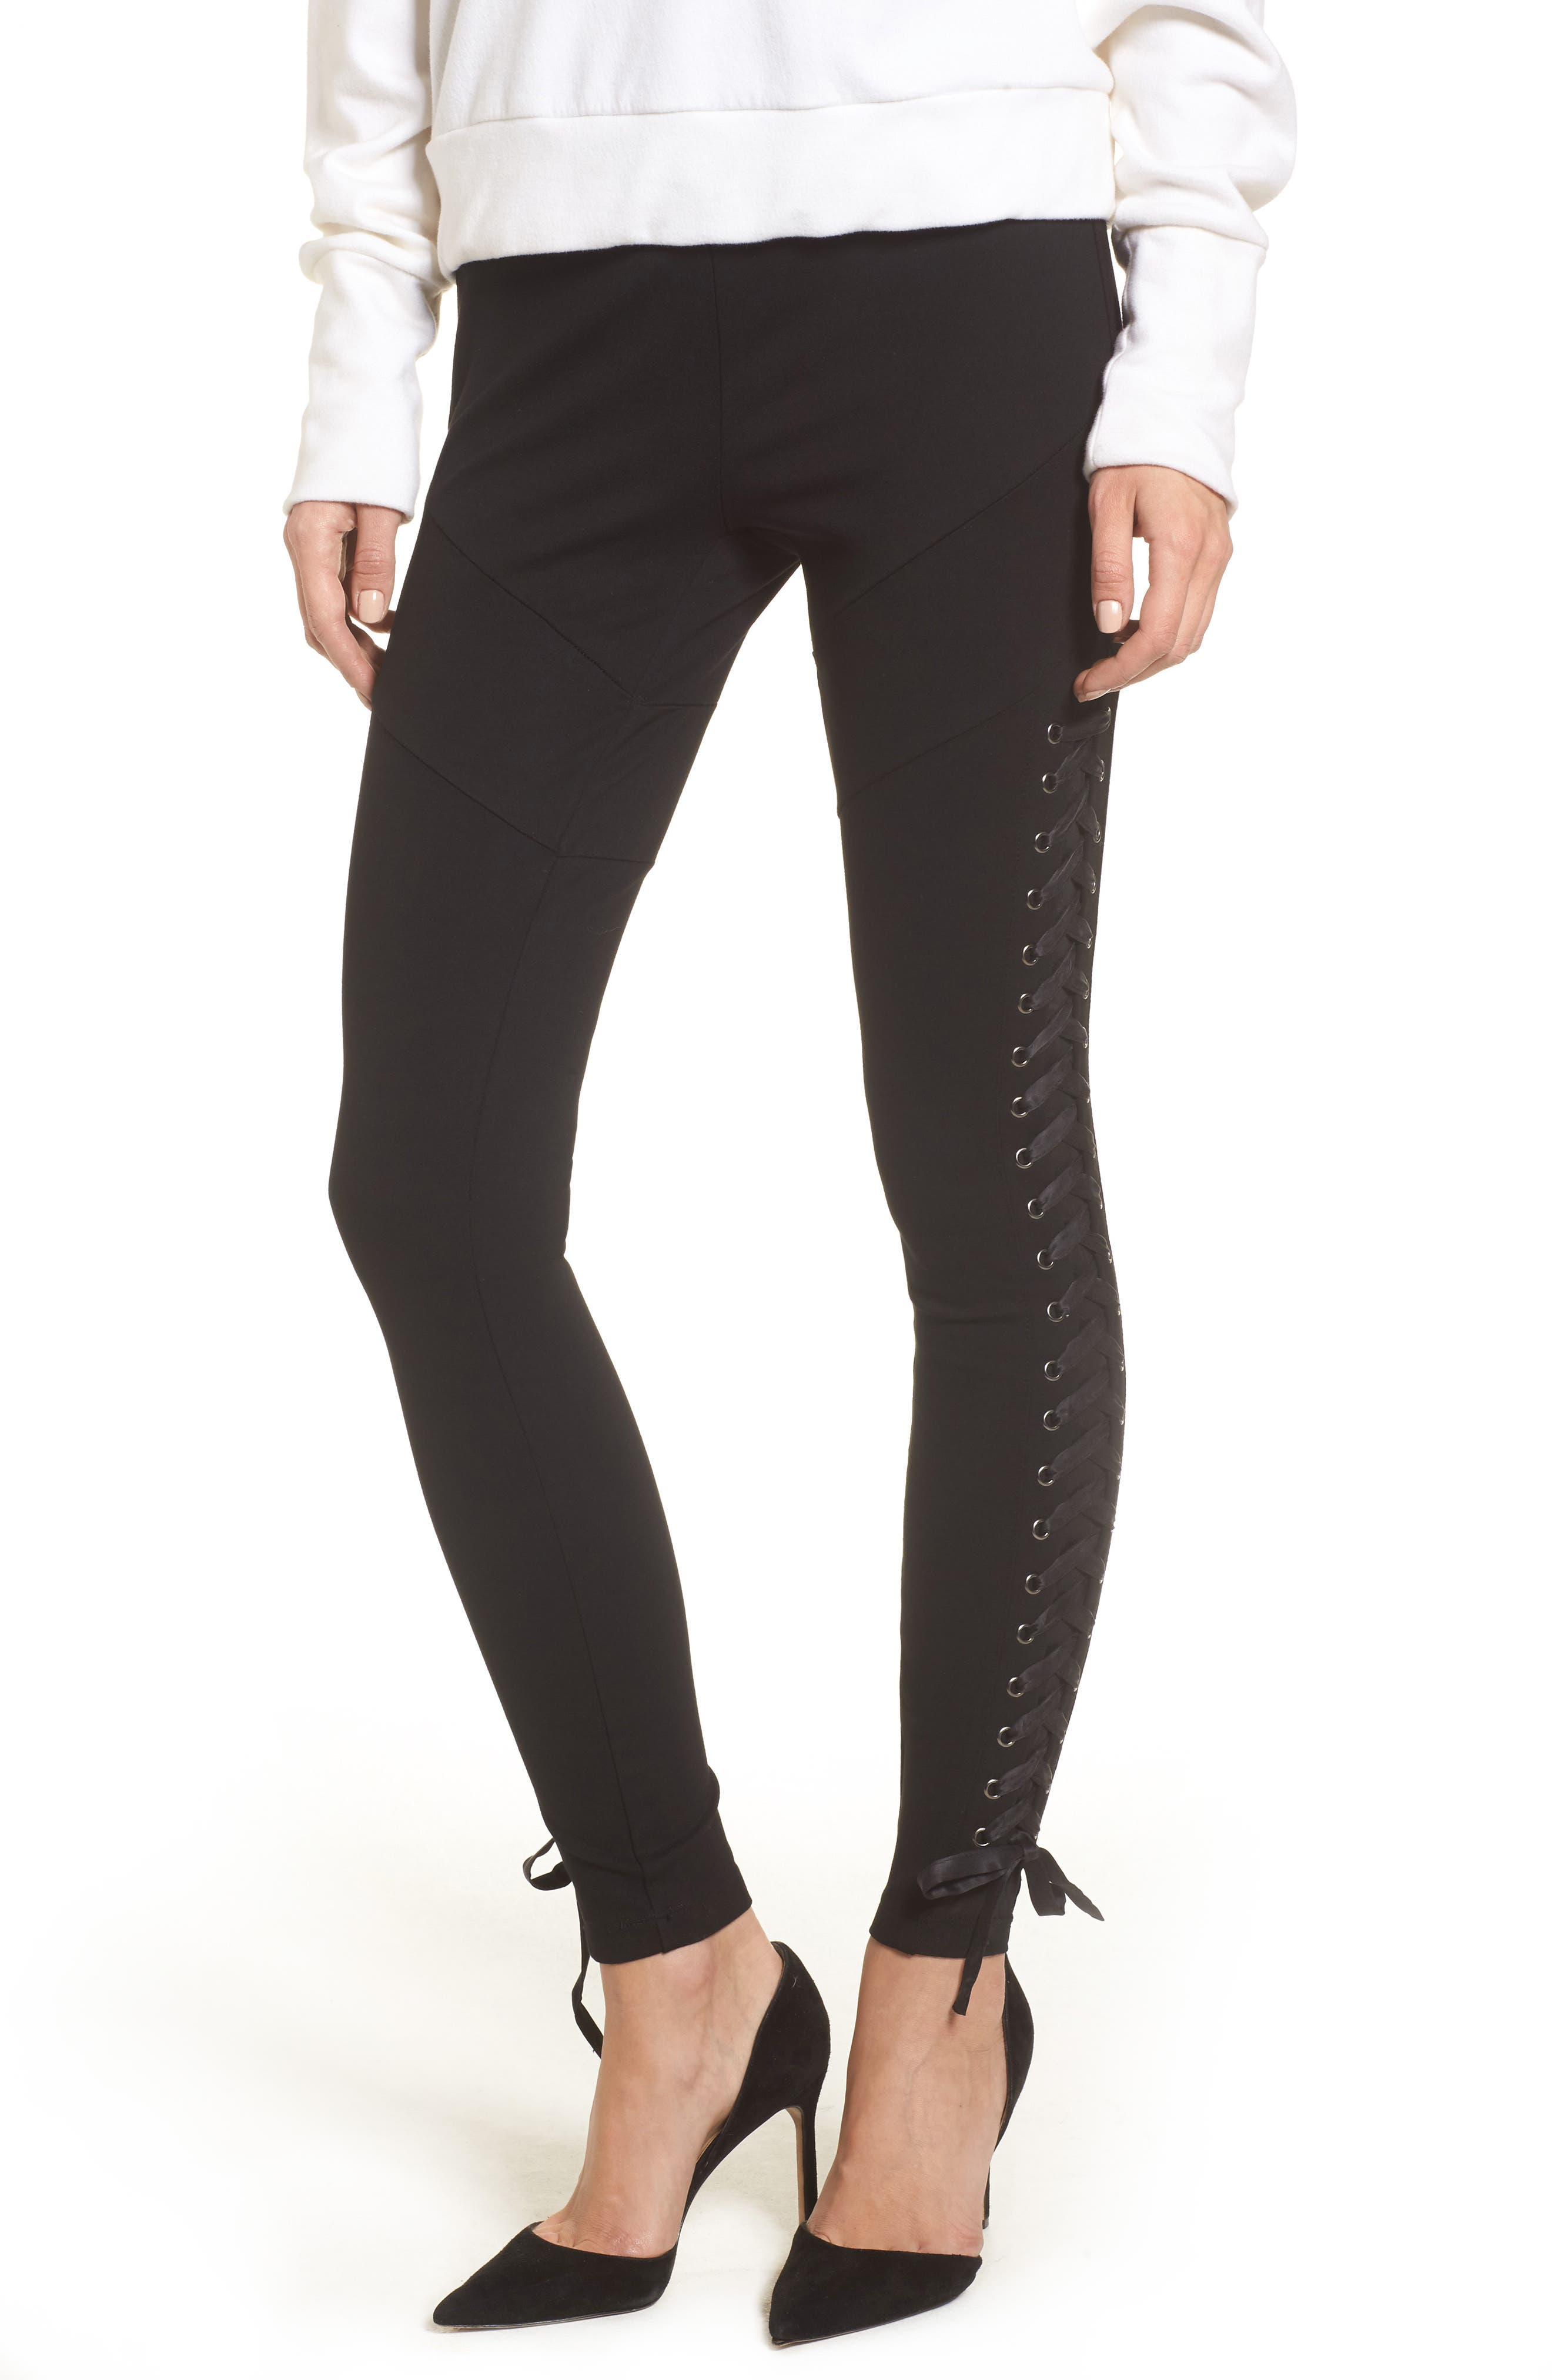 True Religion Brand Jeans Lace-Up Leggings